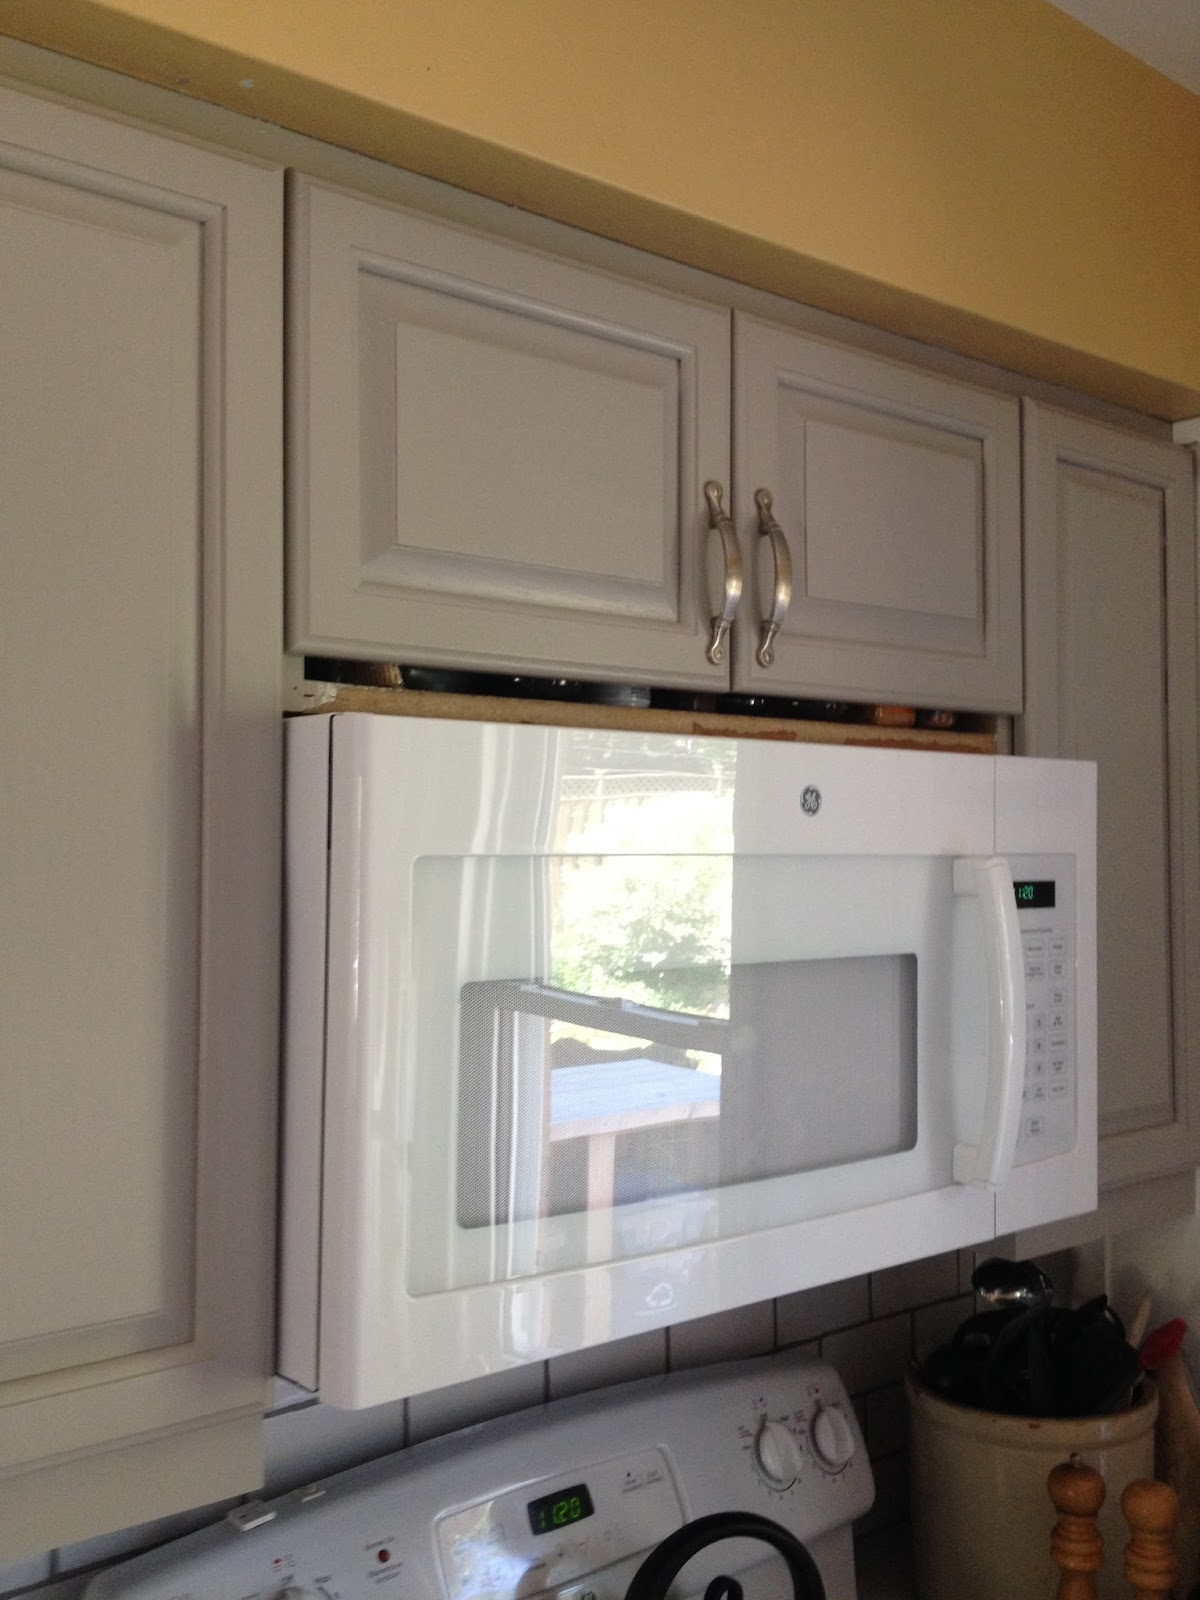 Cabinet For Over The Range Microwave